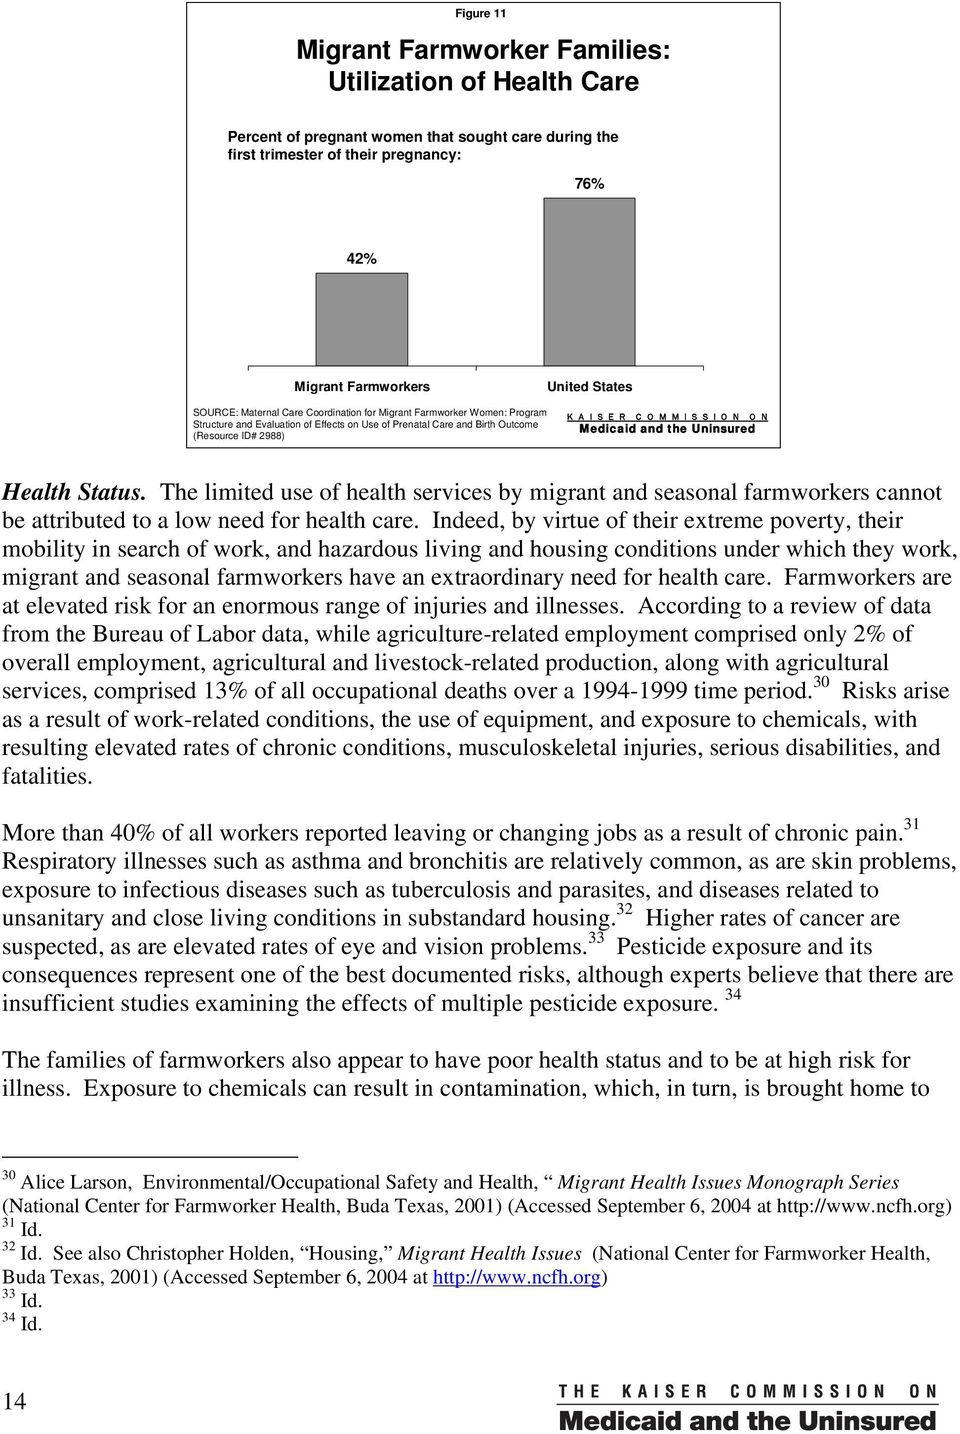 S S I O N O N Medicaid and the Uninsured Health Status. The limited use of health services by migrant and seasonal farmworkers cannot be attributed to a low need for health care.